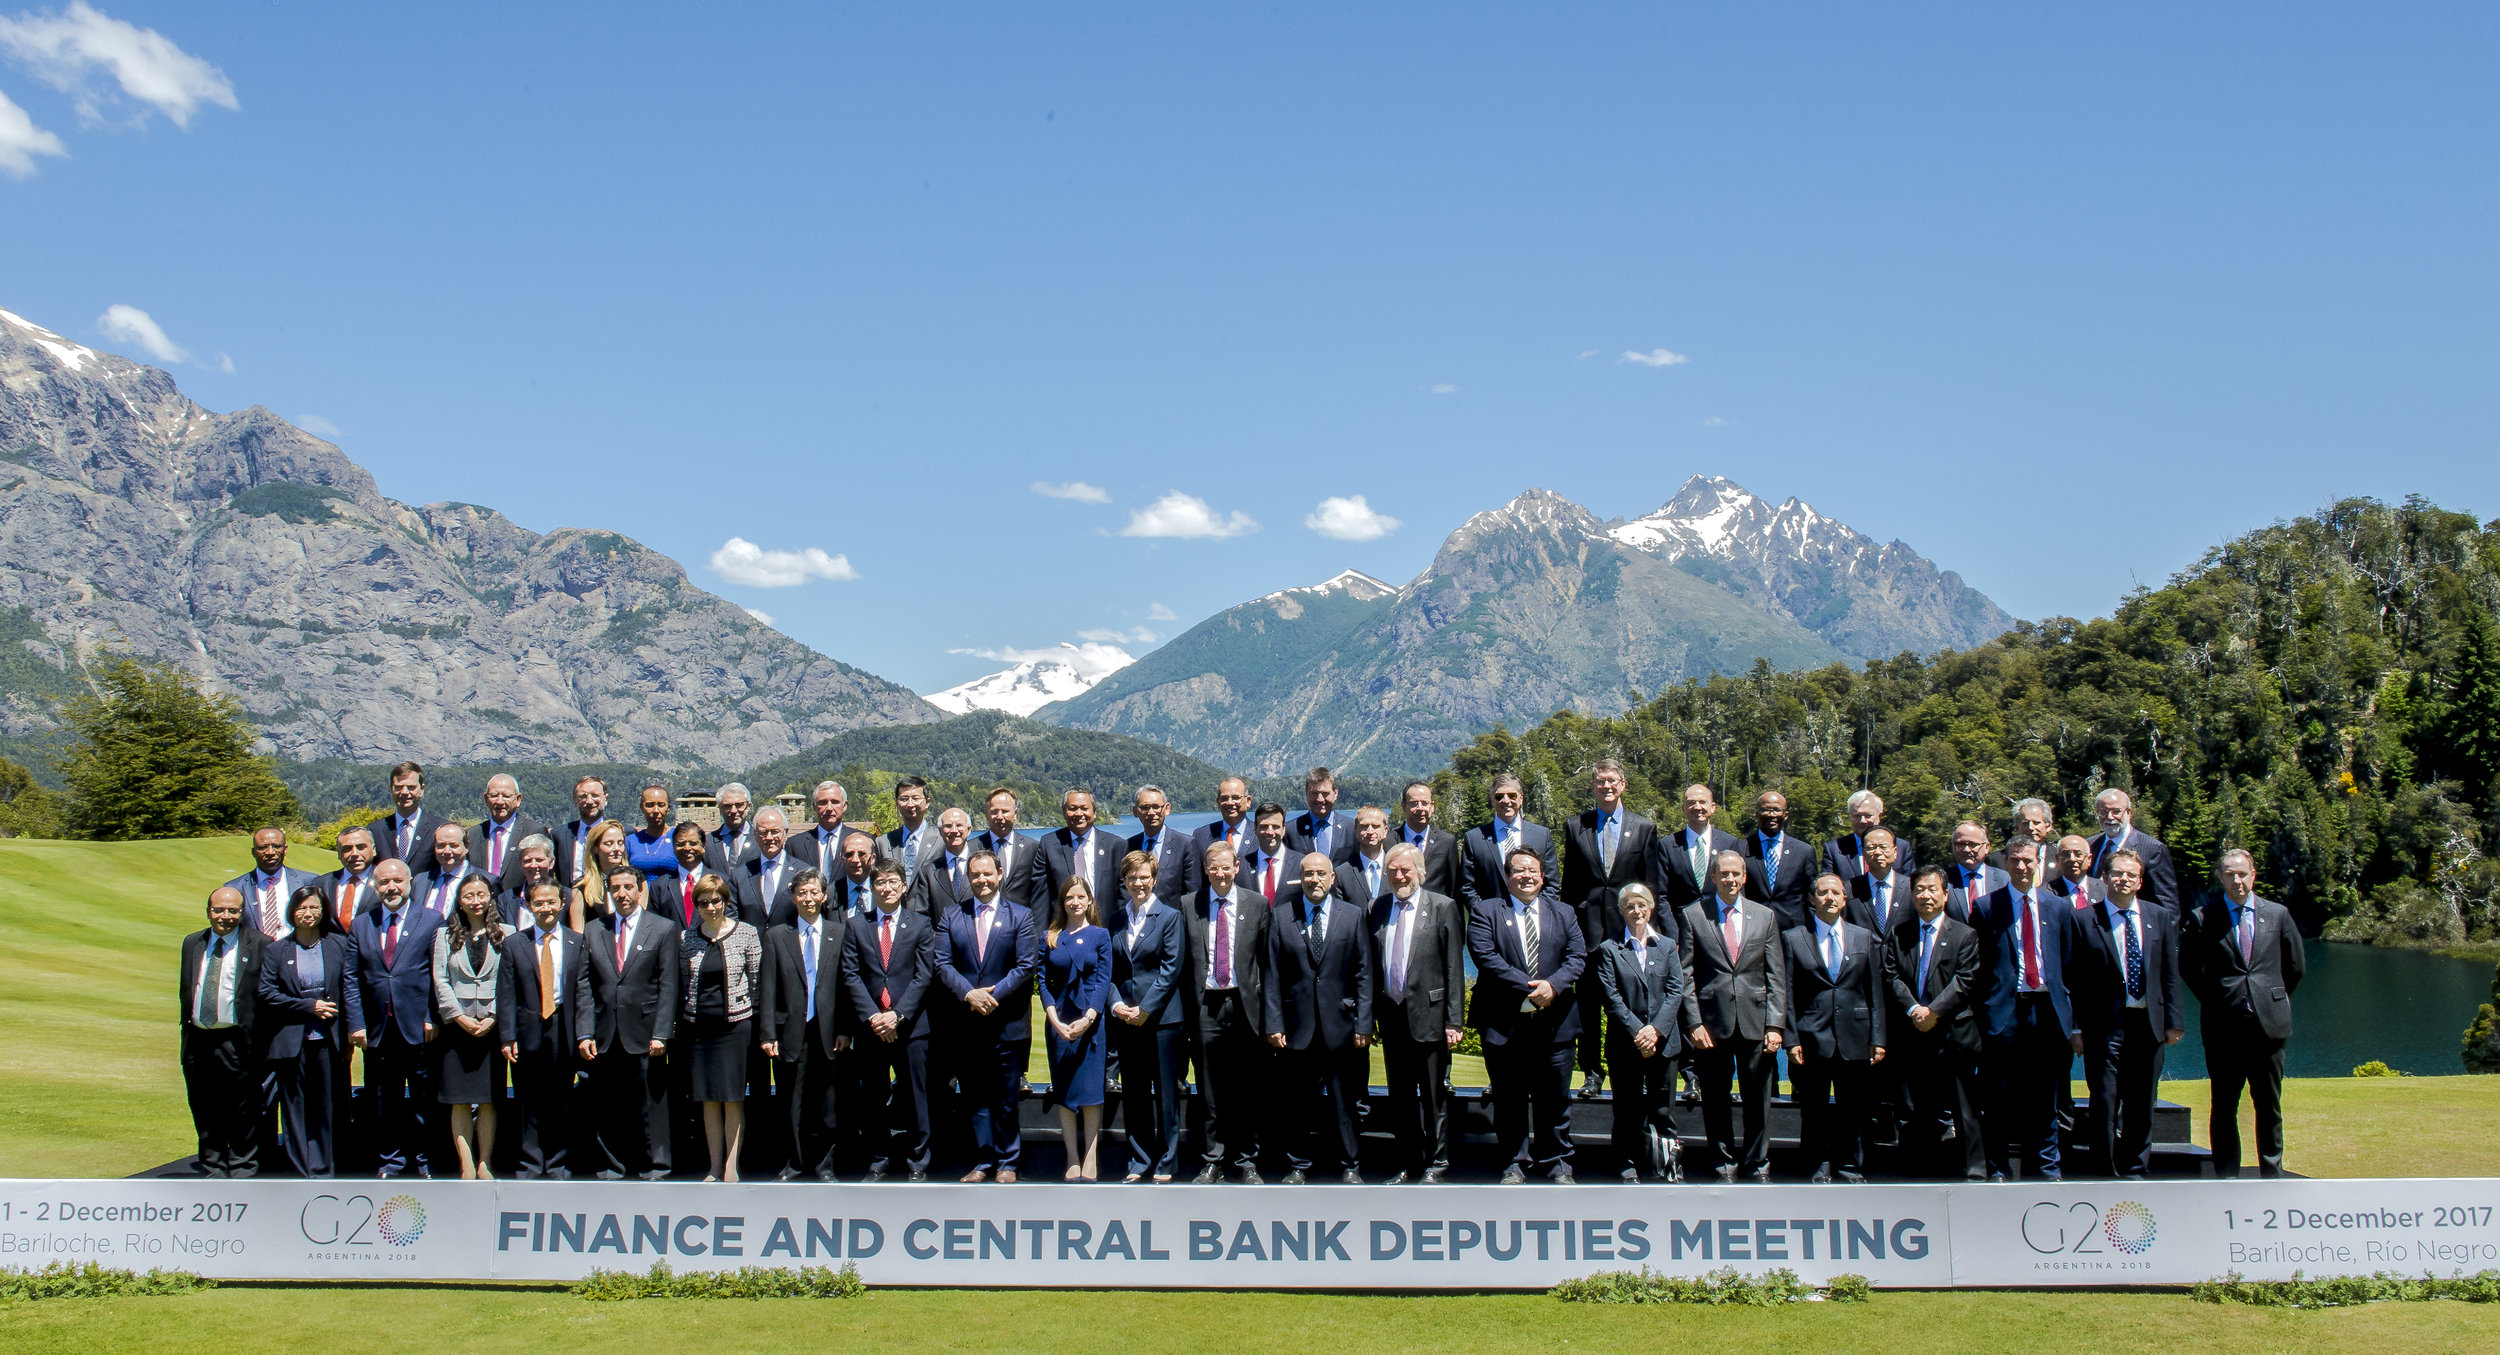 Finance and central bank deputies